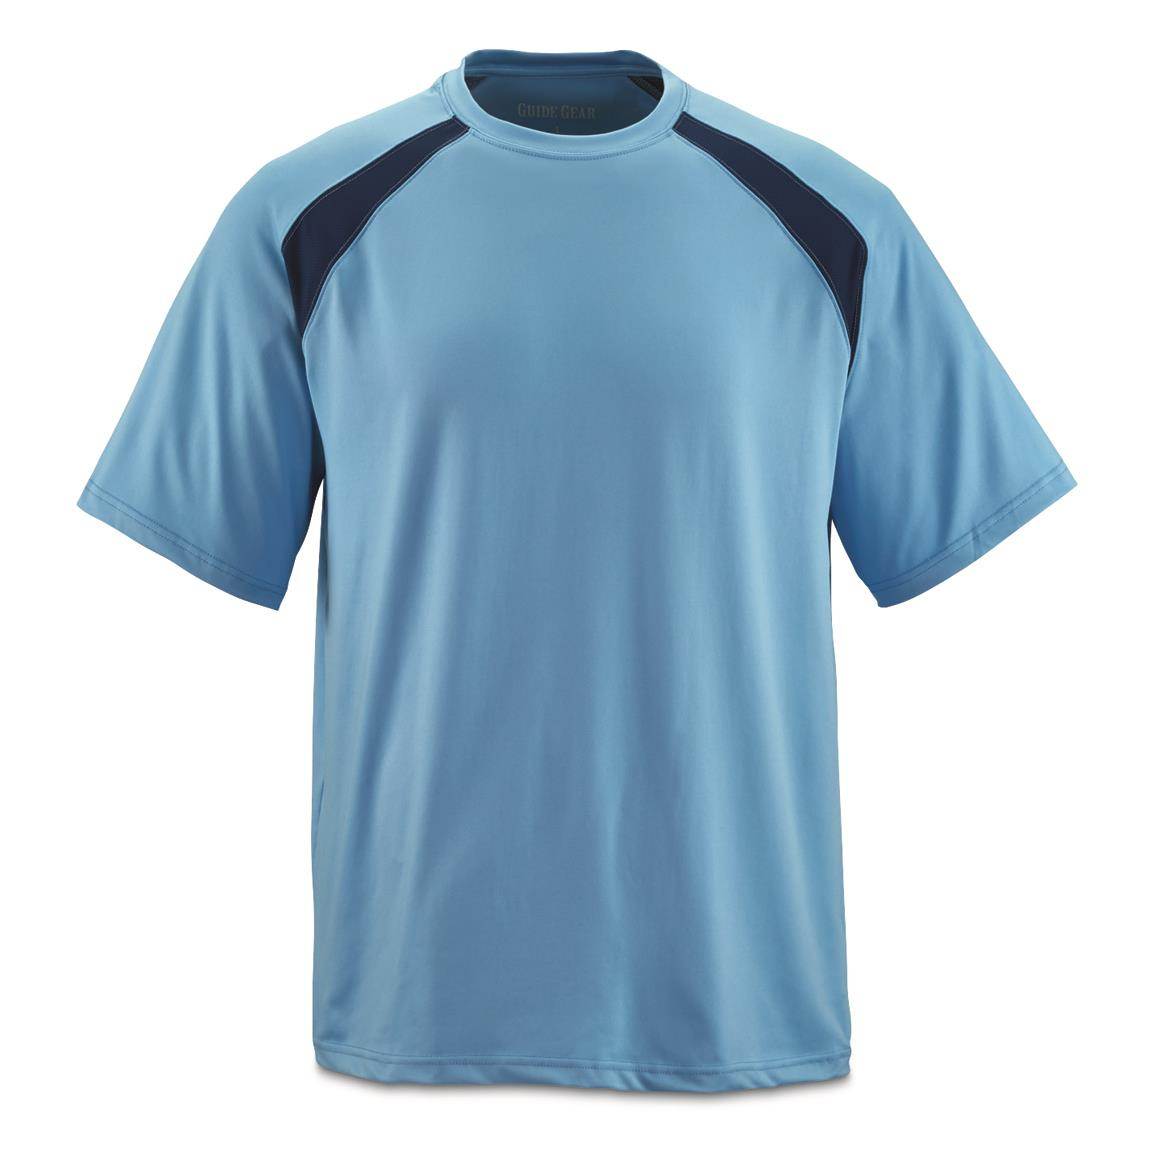 Guide Gear Men's Performance Fishing Short Sleeve T-Shirt, Light Blue